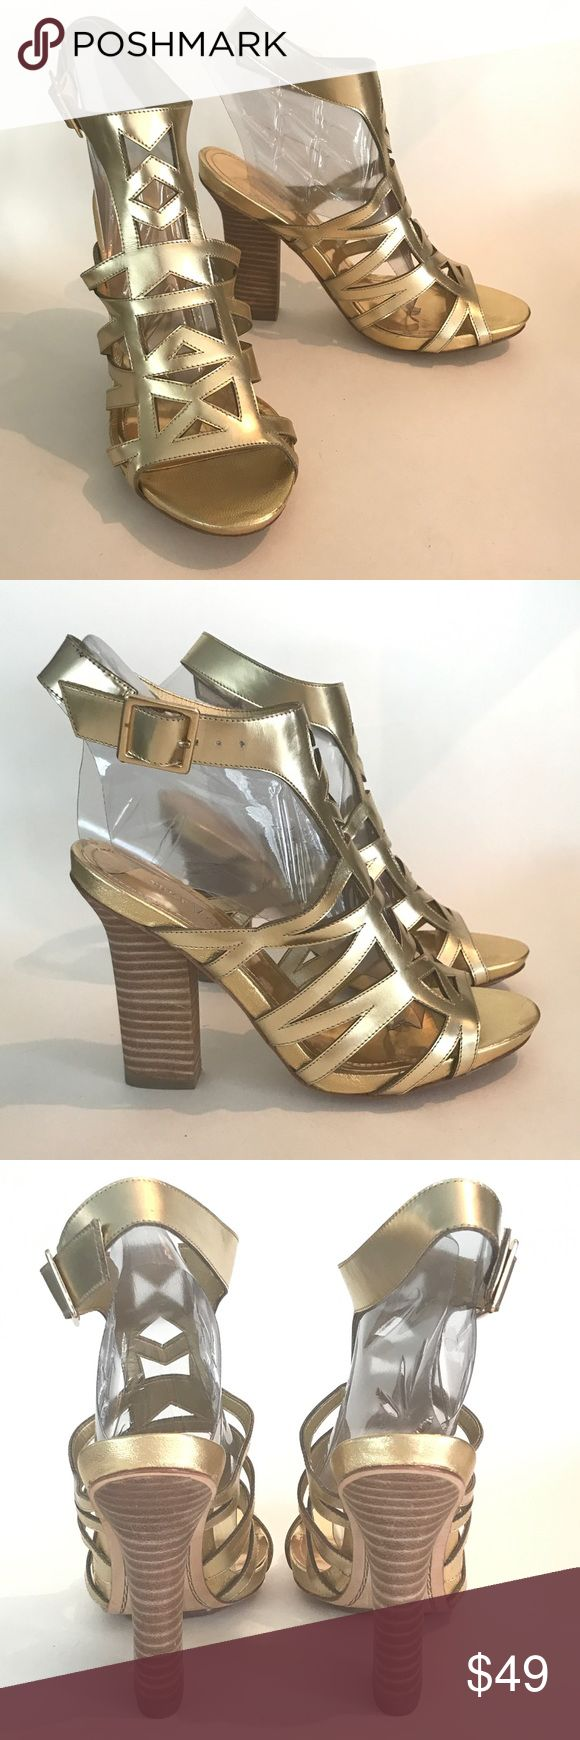 New Vince Camuto V Gold Sandals Heels 6.5 M New Vince Camuto V Gold Sandals Heels Strappy Size 6.5 M New without box! See Photos!        S10 Vince Camuto Shoes Heels